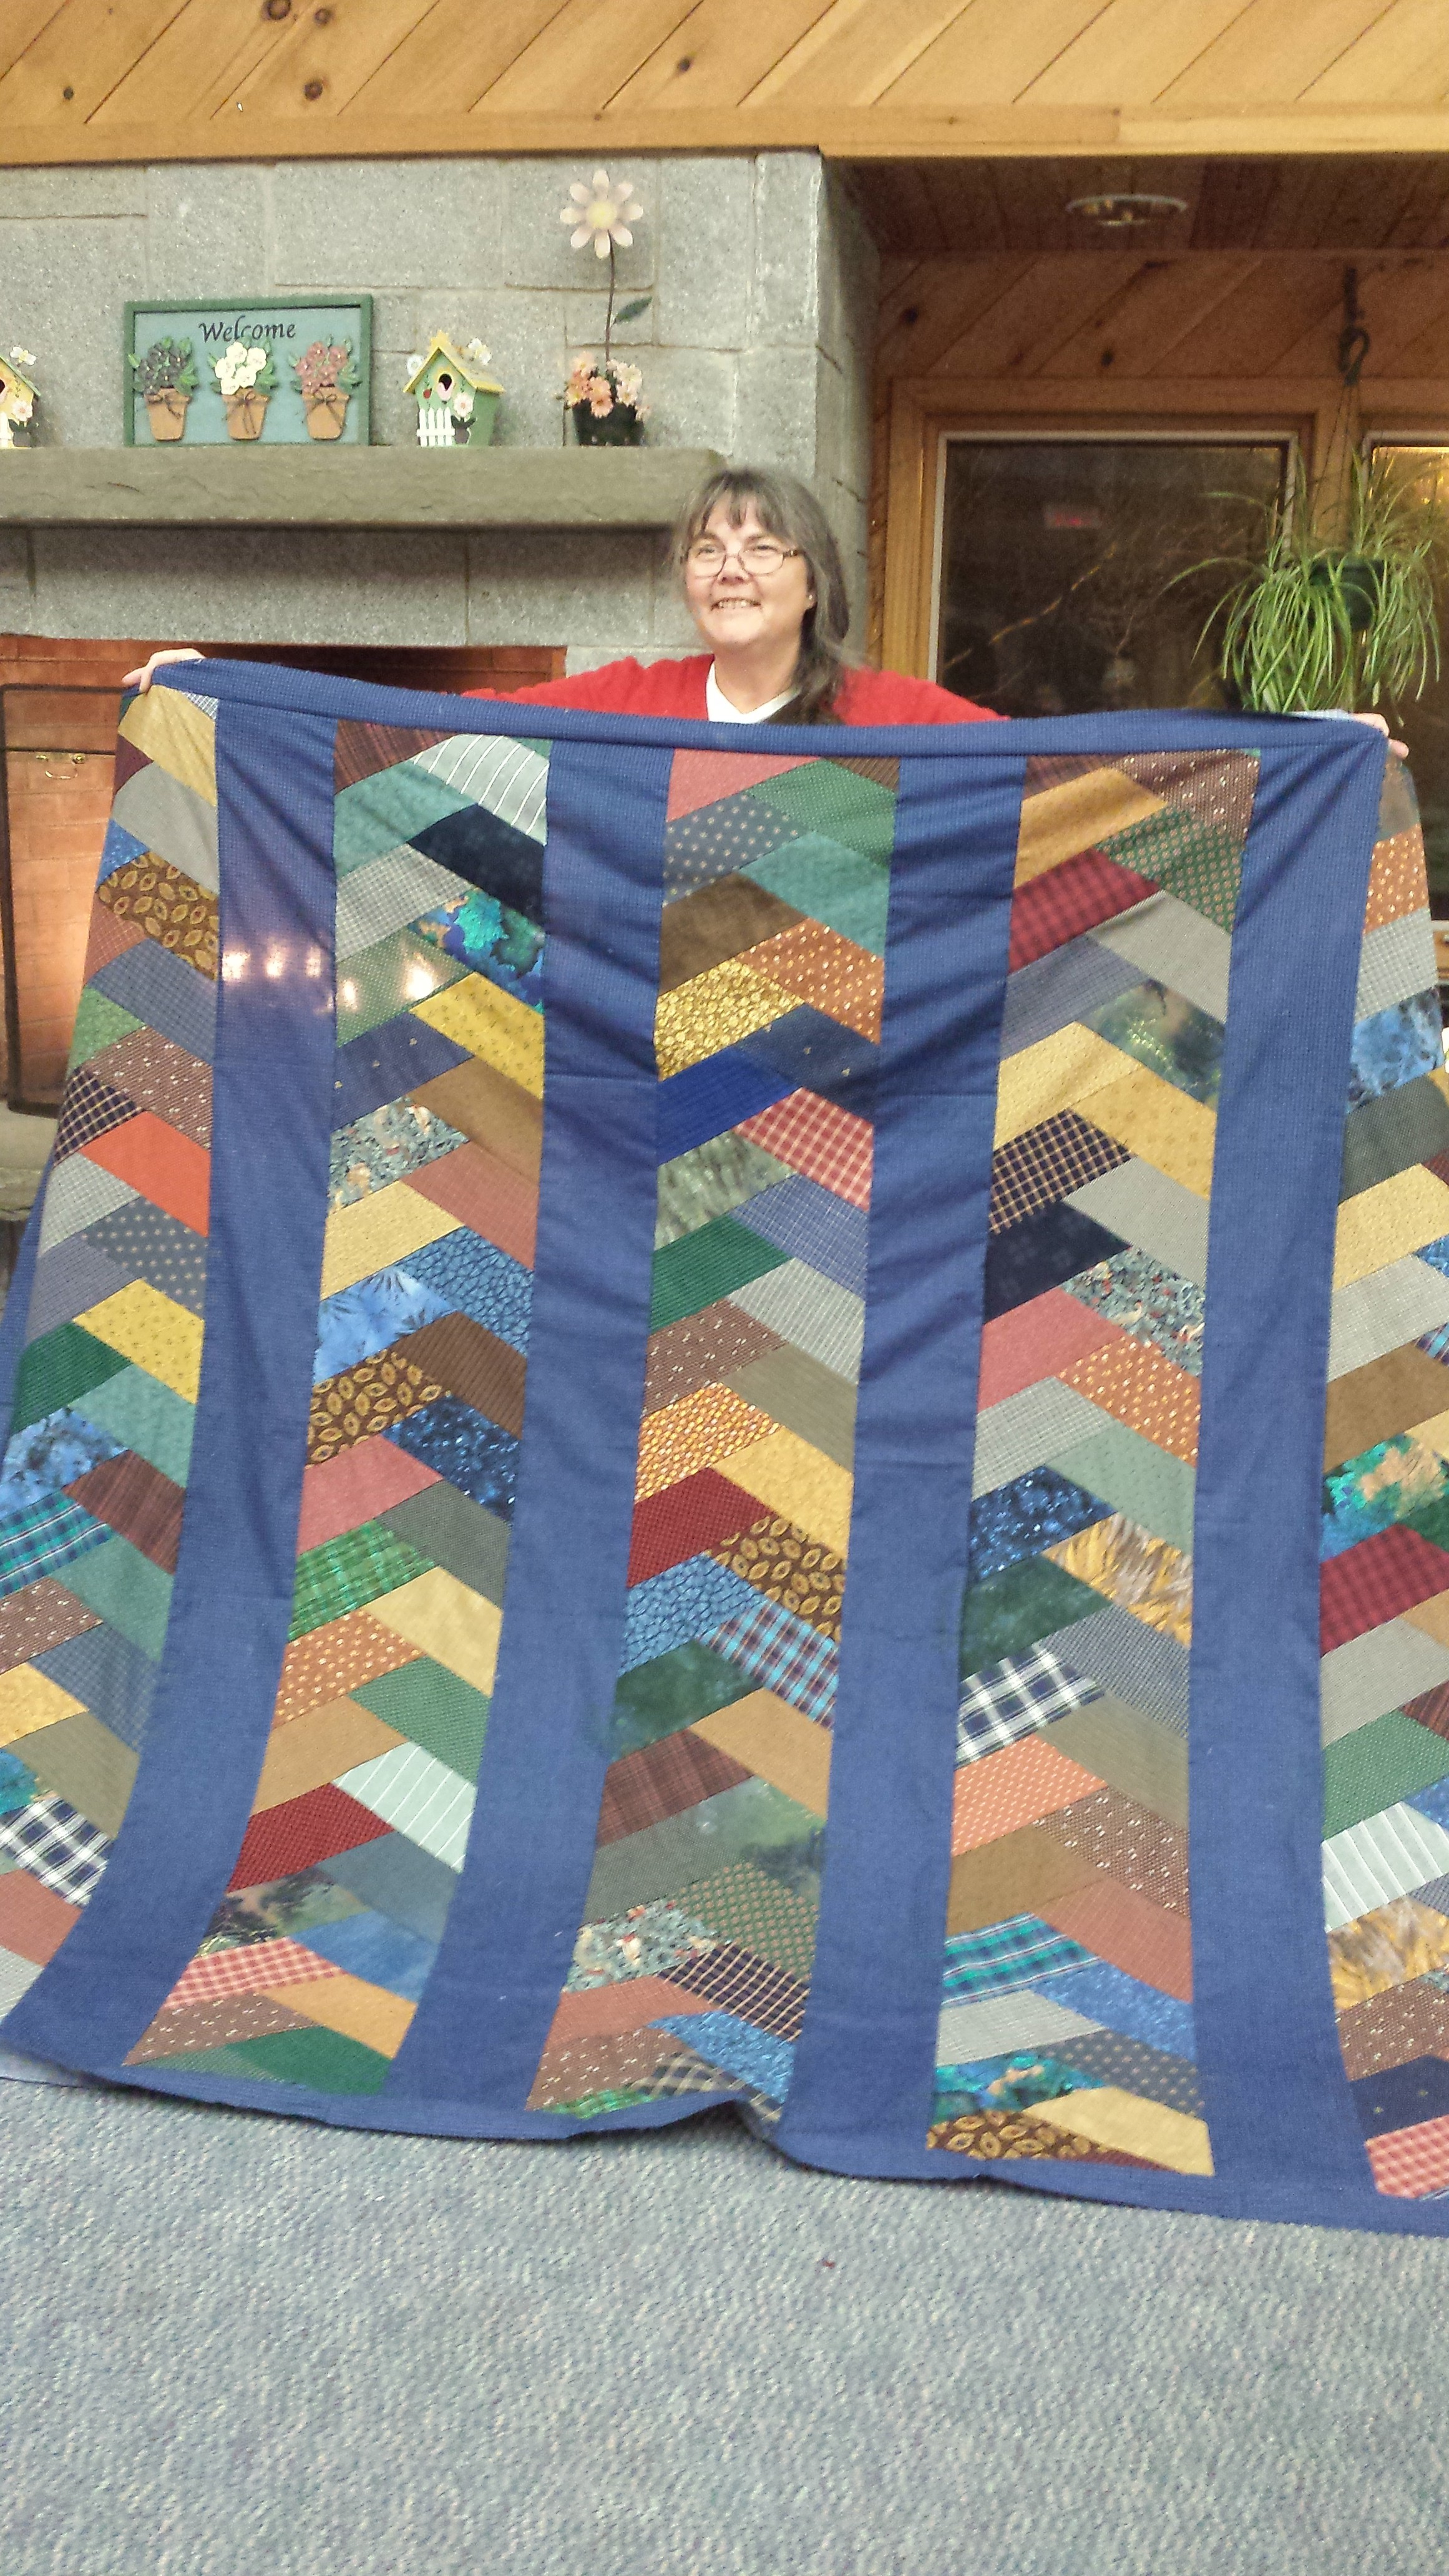 Bonnie's Quilt for Her Brother